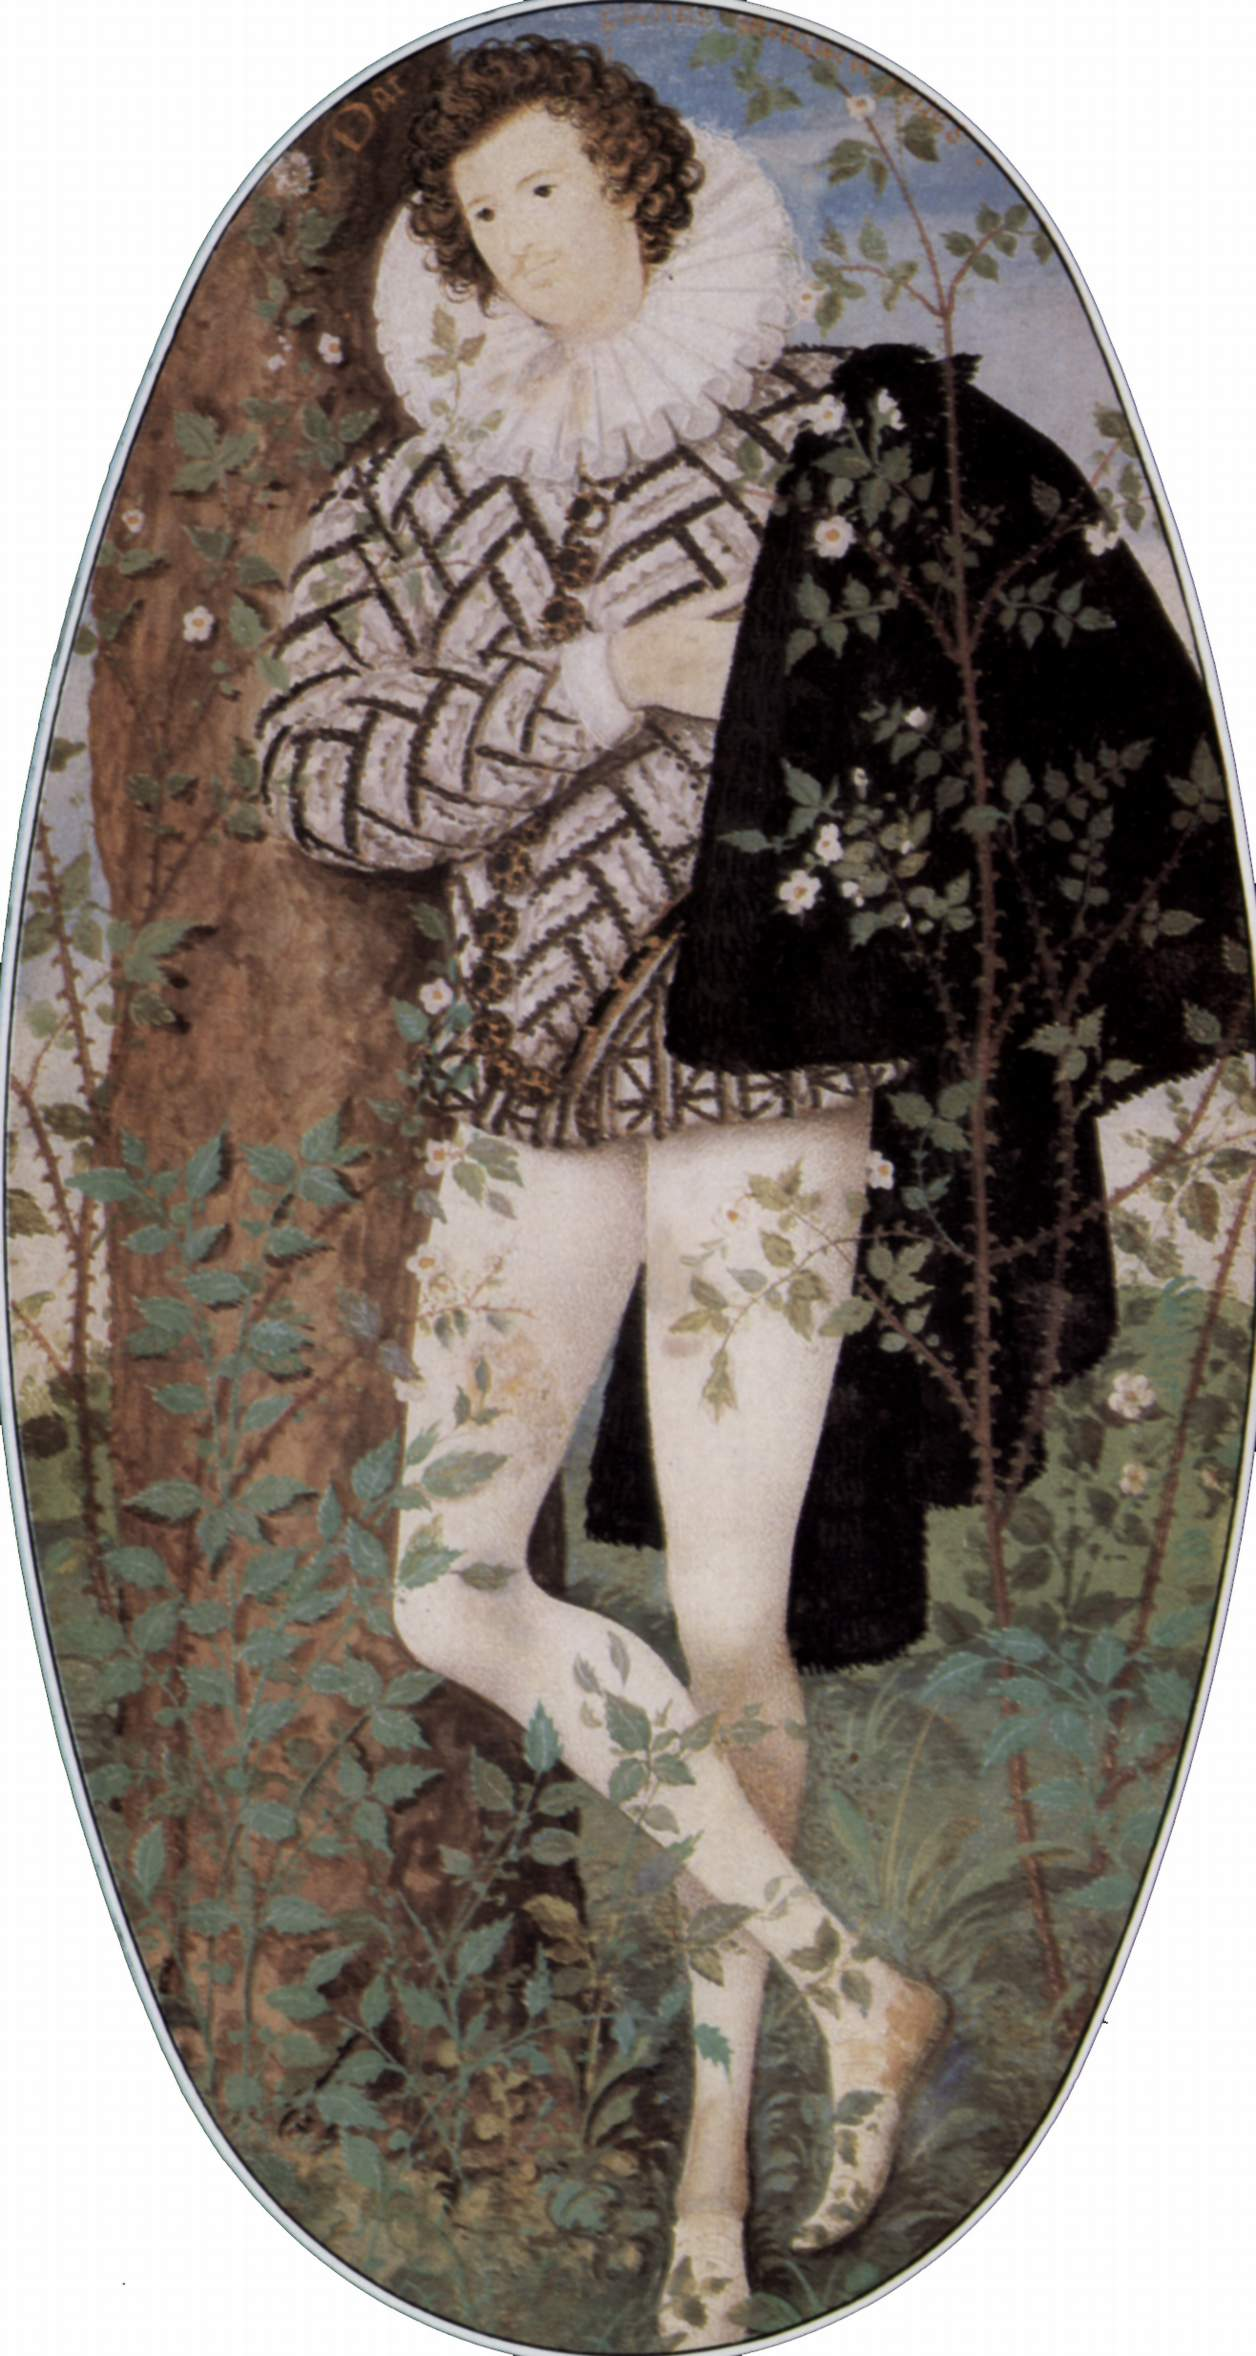 Young Man Among Roses, portrait miniature by Nicholas Hilliard, 1588, V&A. Believed to be the Earl of Essex